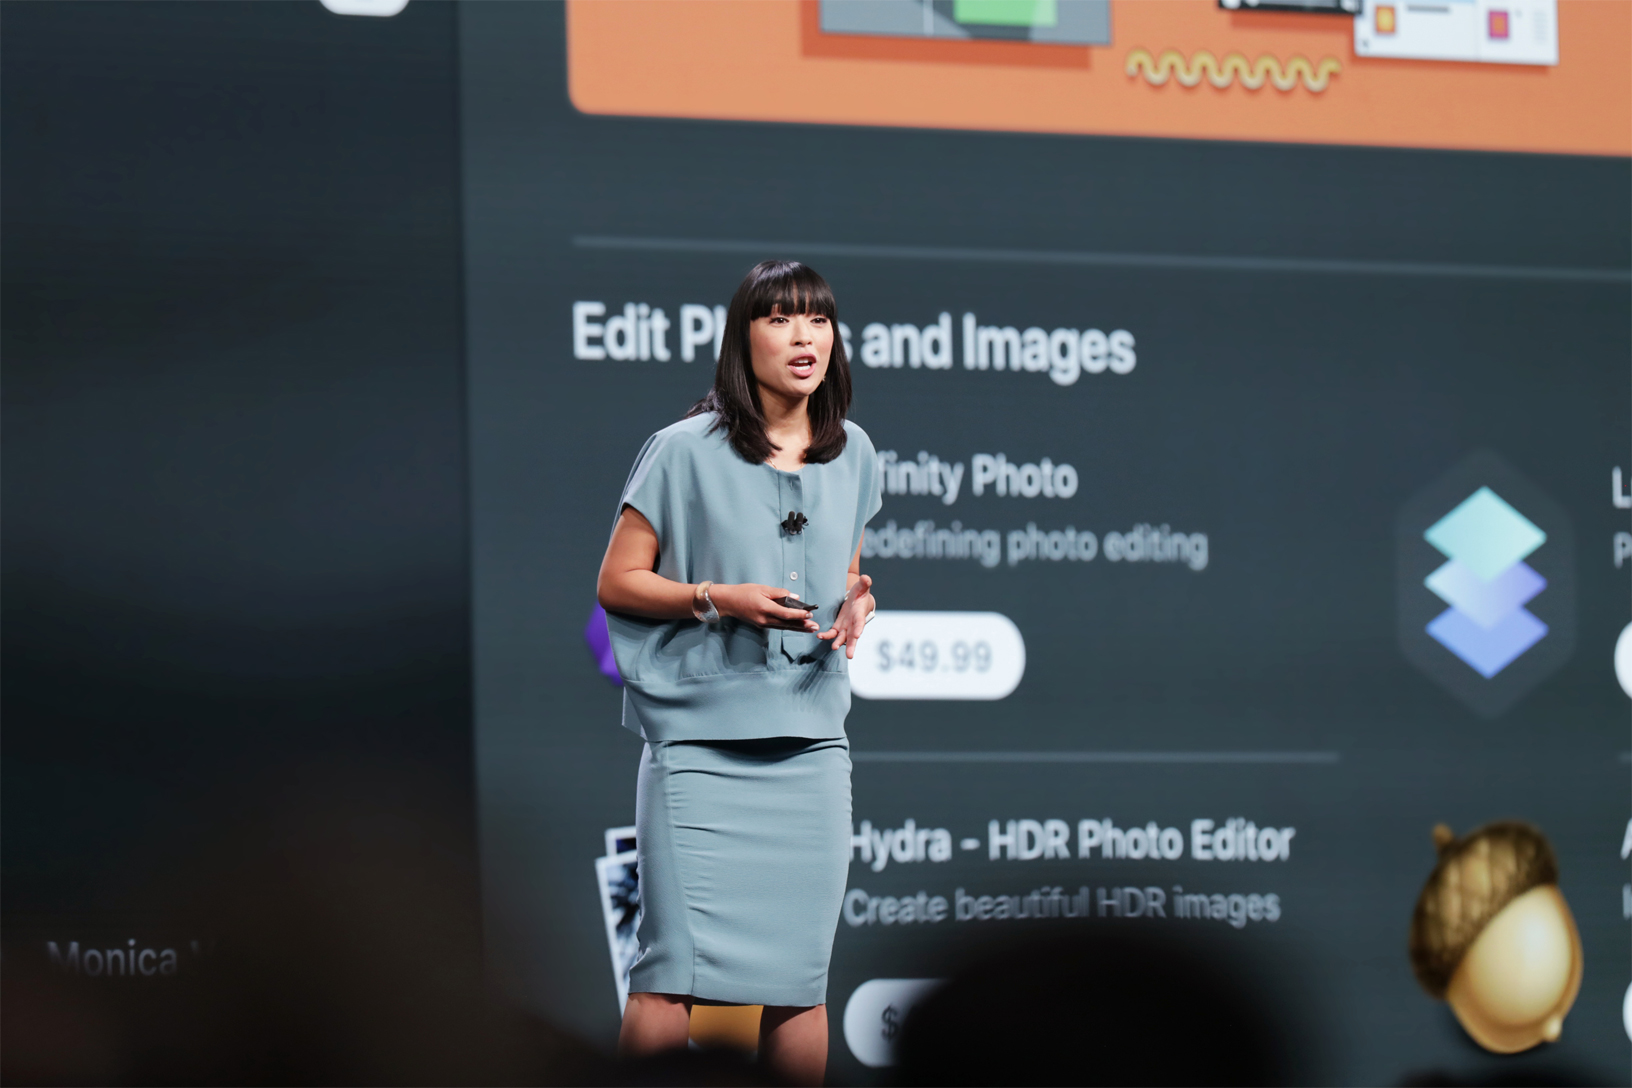 WWDC-2018-Wrap-Up_Ann-Thai-App-store_06042018.jpg